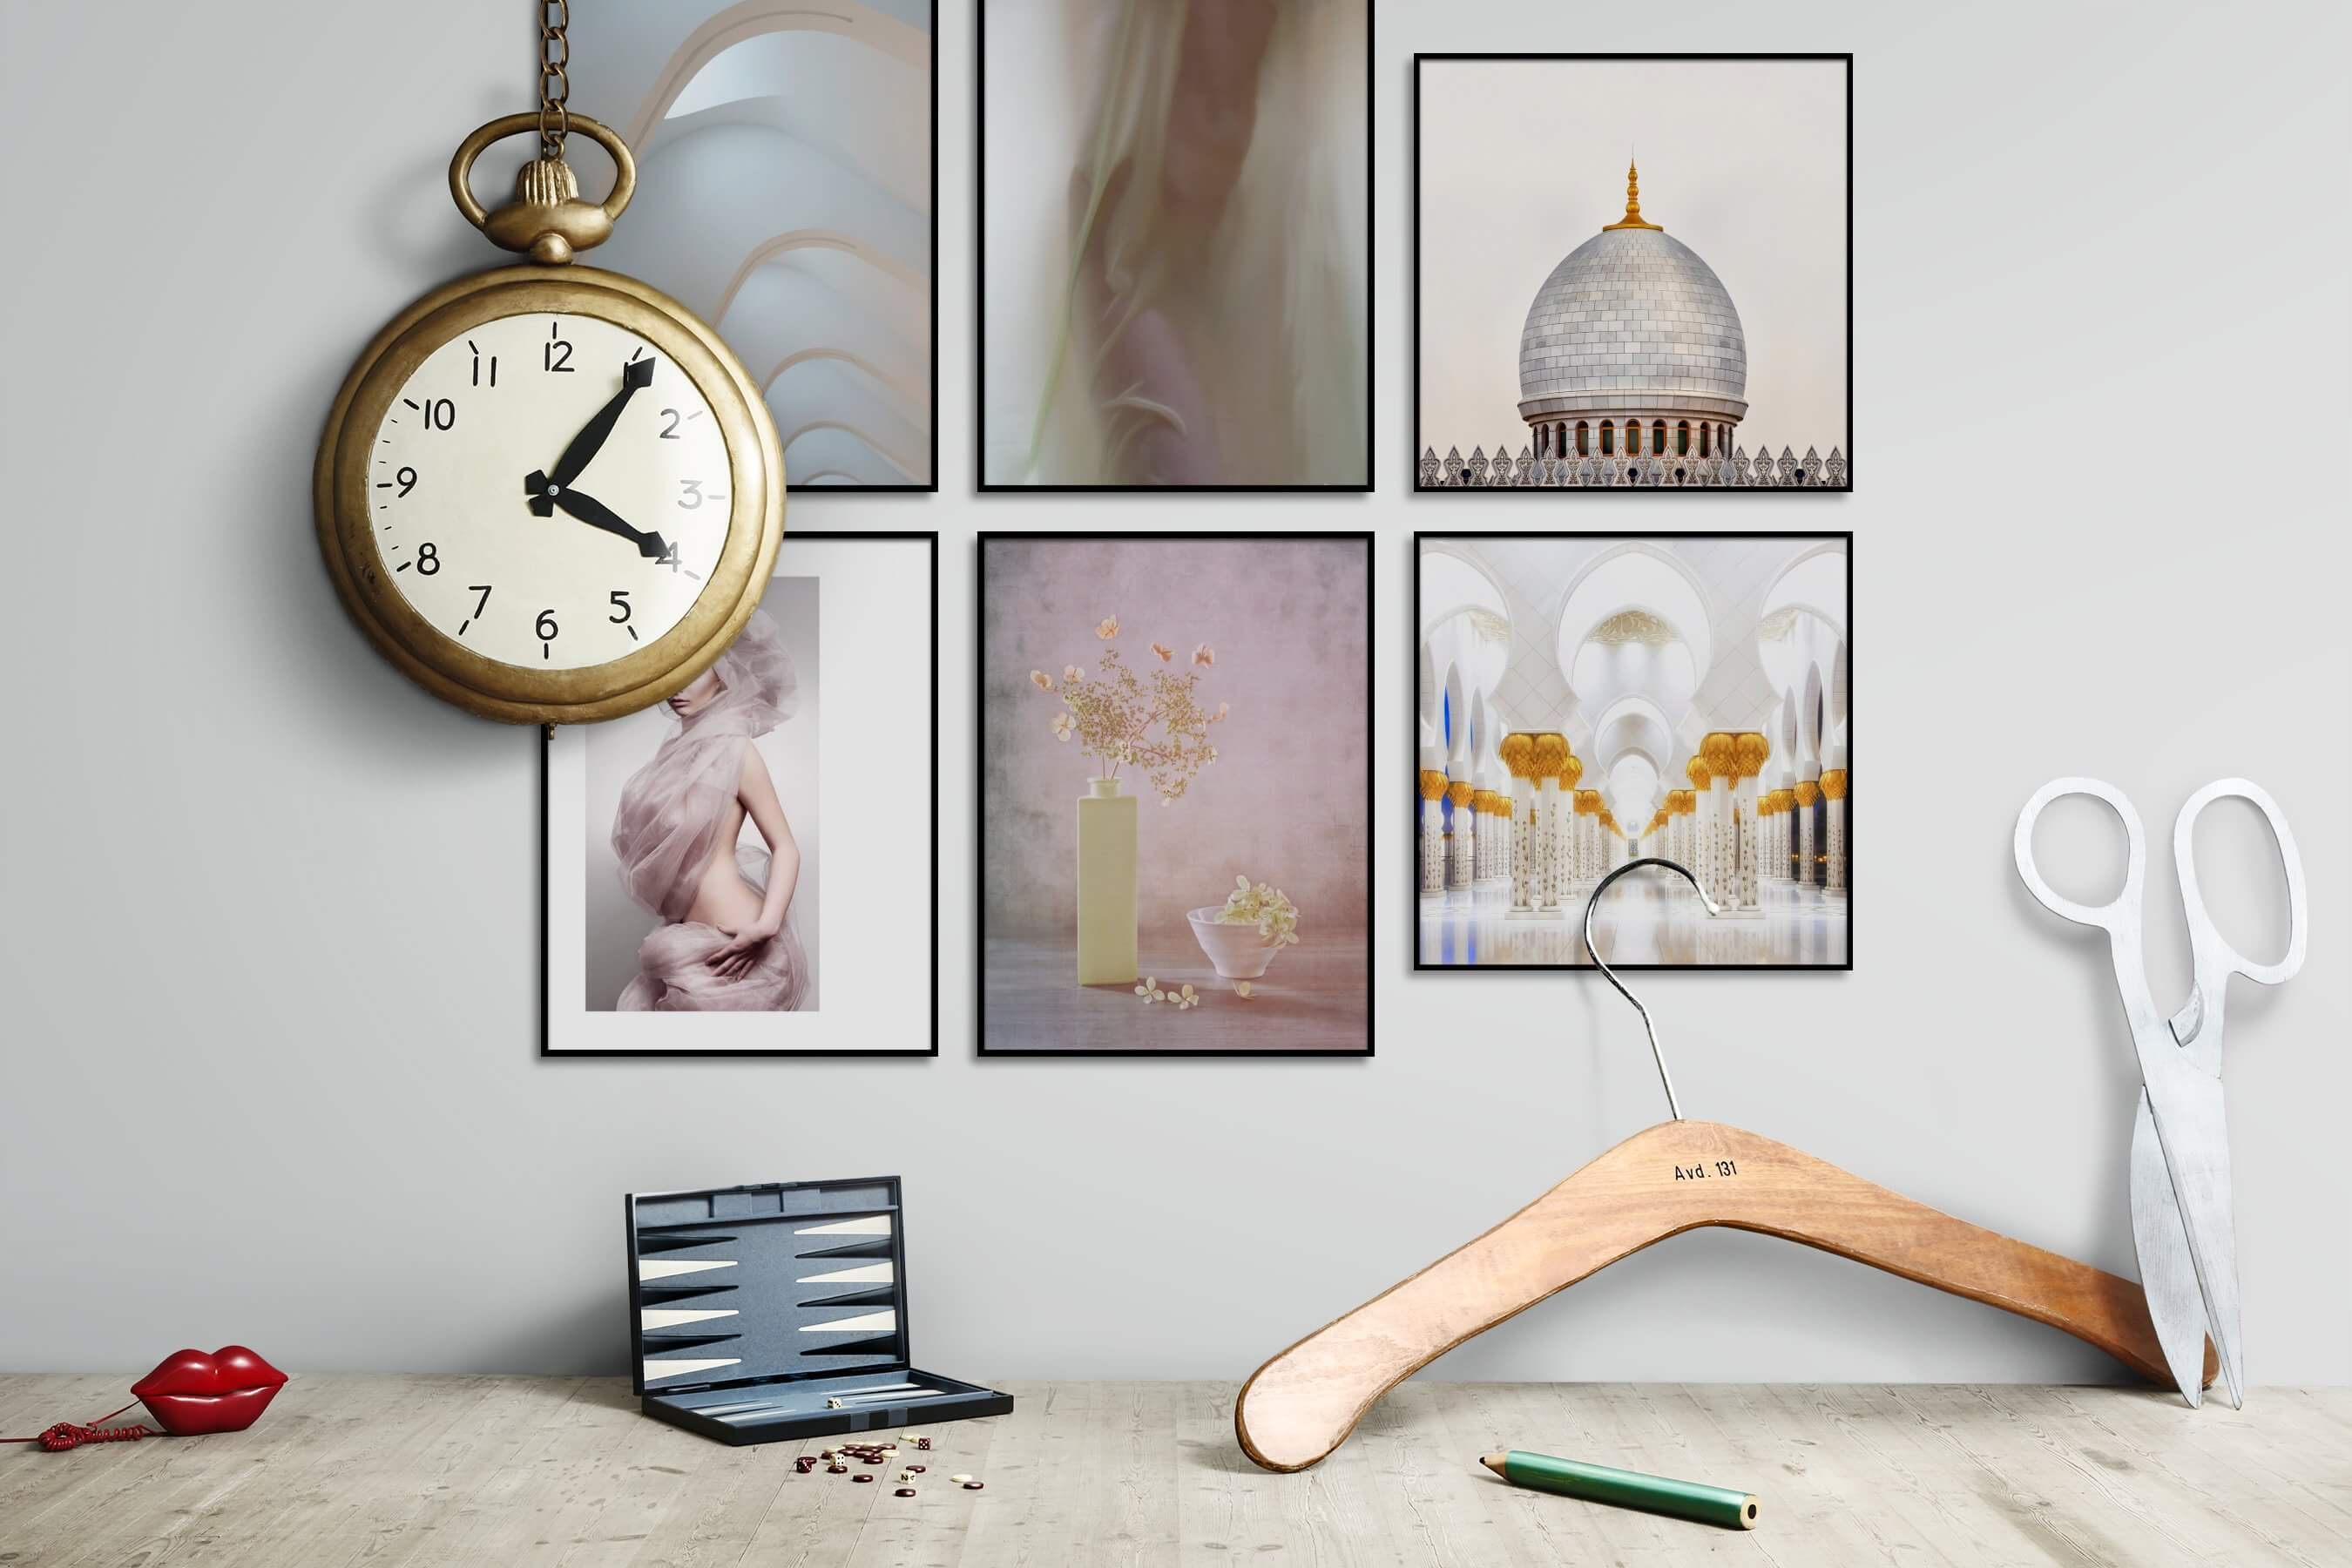 Gallery wall idea with six framed pictures arranged on a wall depicting For the Moderate, Fashion & Beauty, Flowers & Plants, Vintage, and For the Maximalist